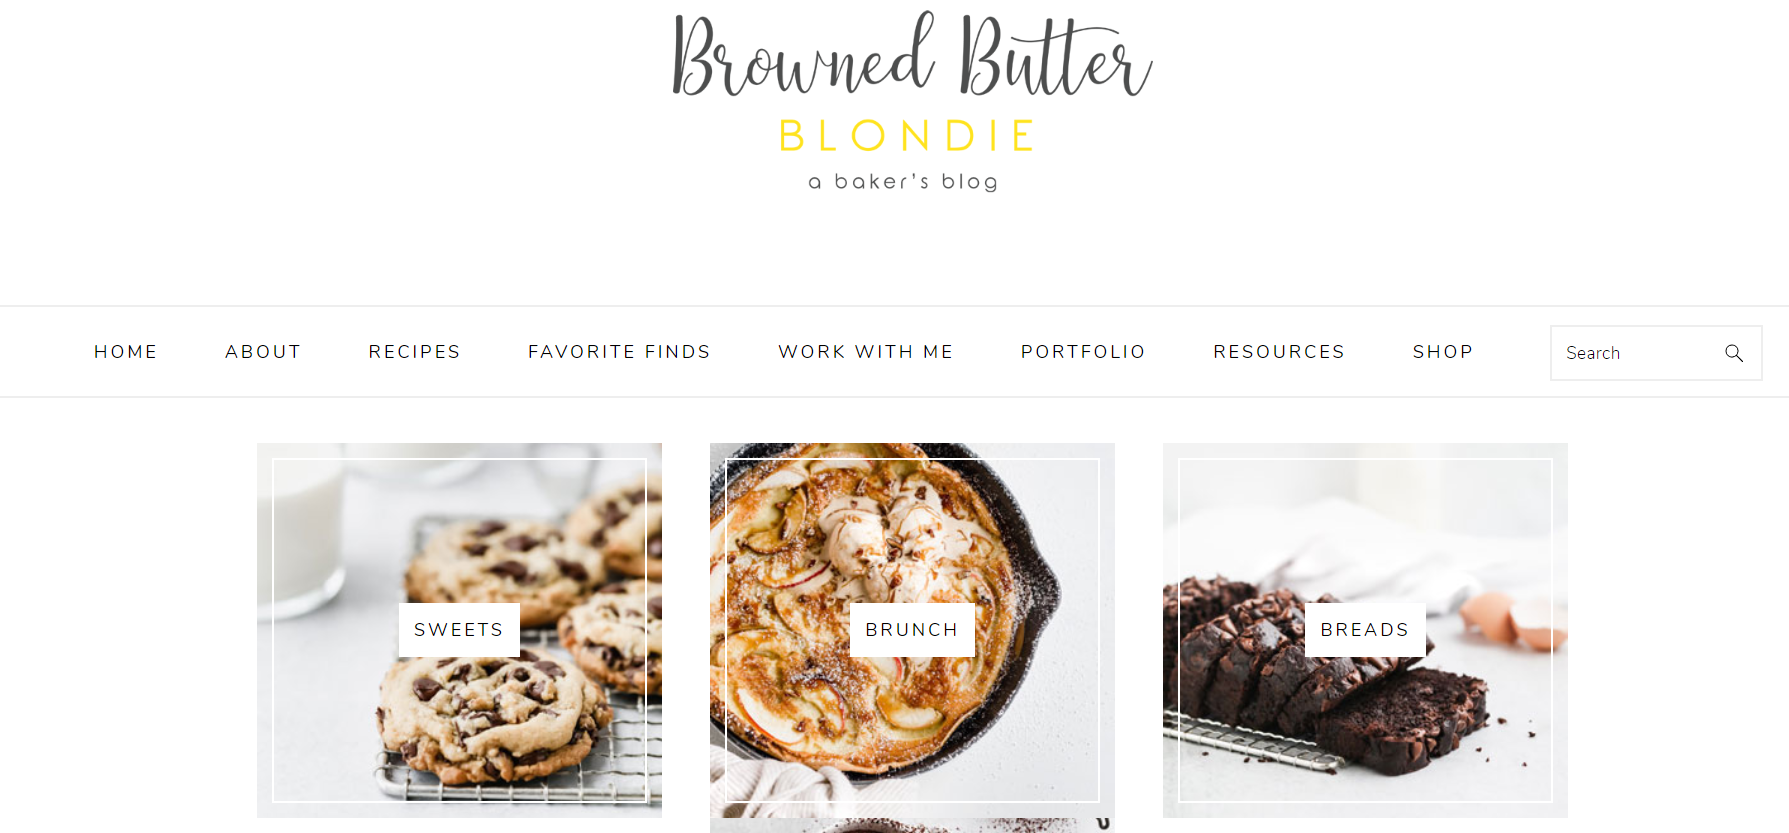 browned butter blondie